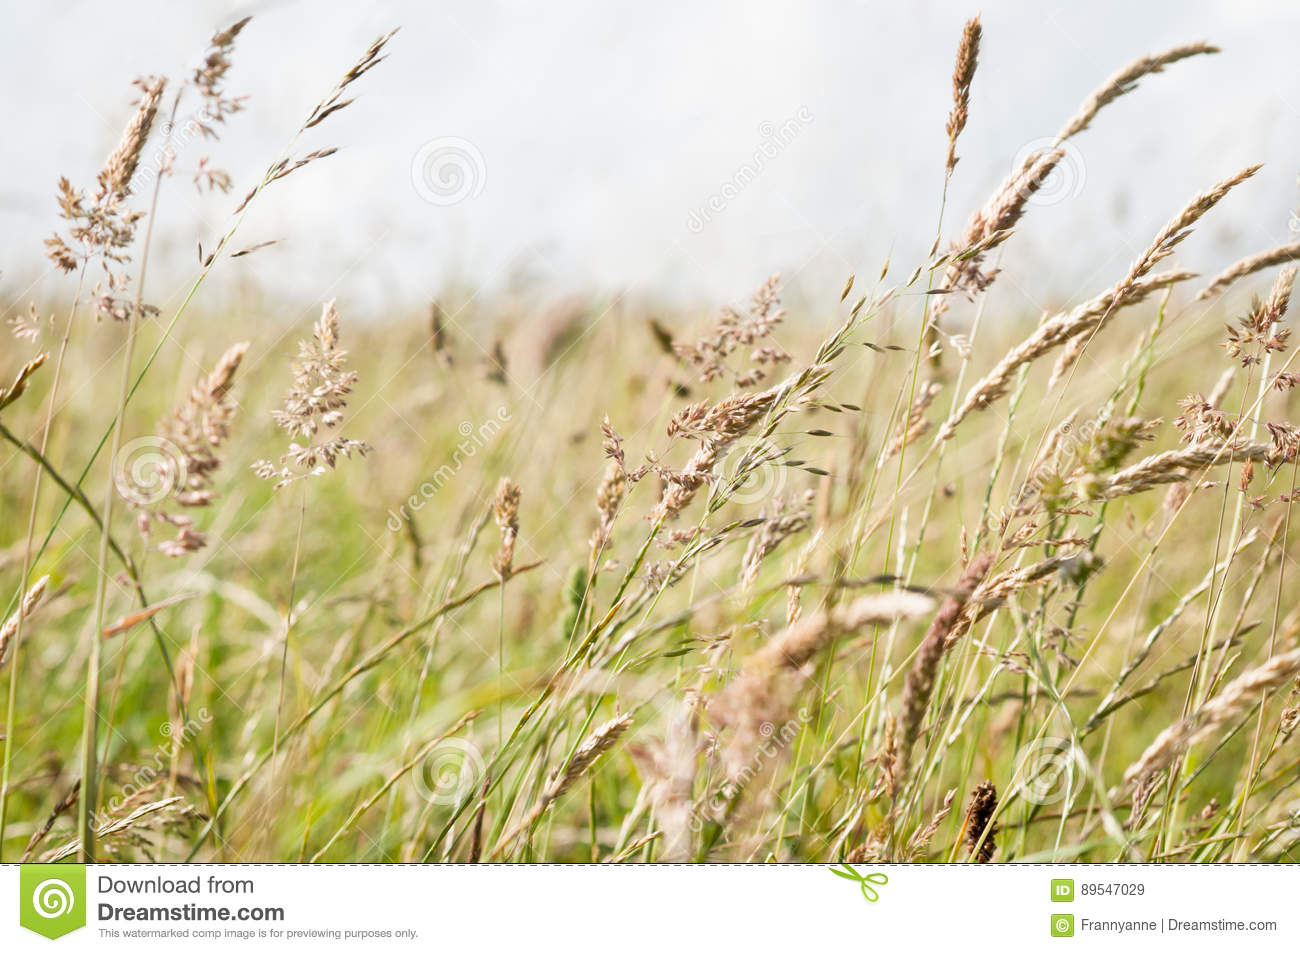 Wild Grasses Blowing in Breeze in a Countryside Meadow